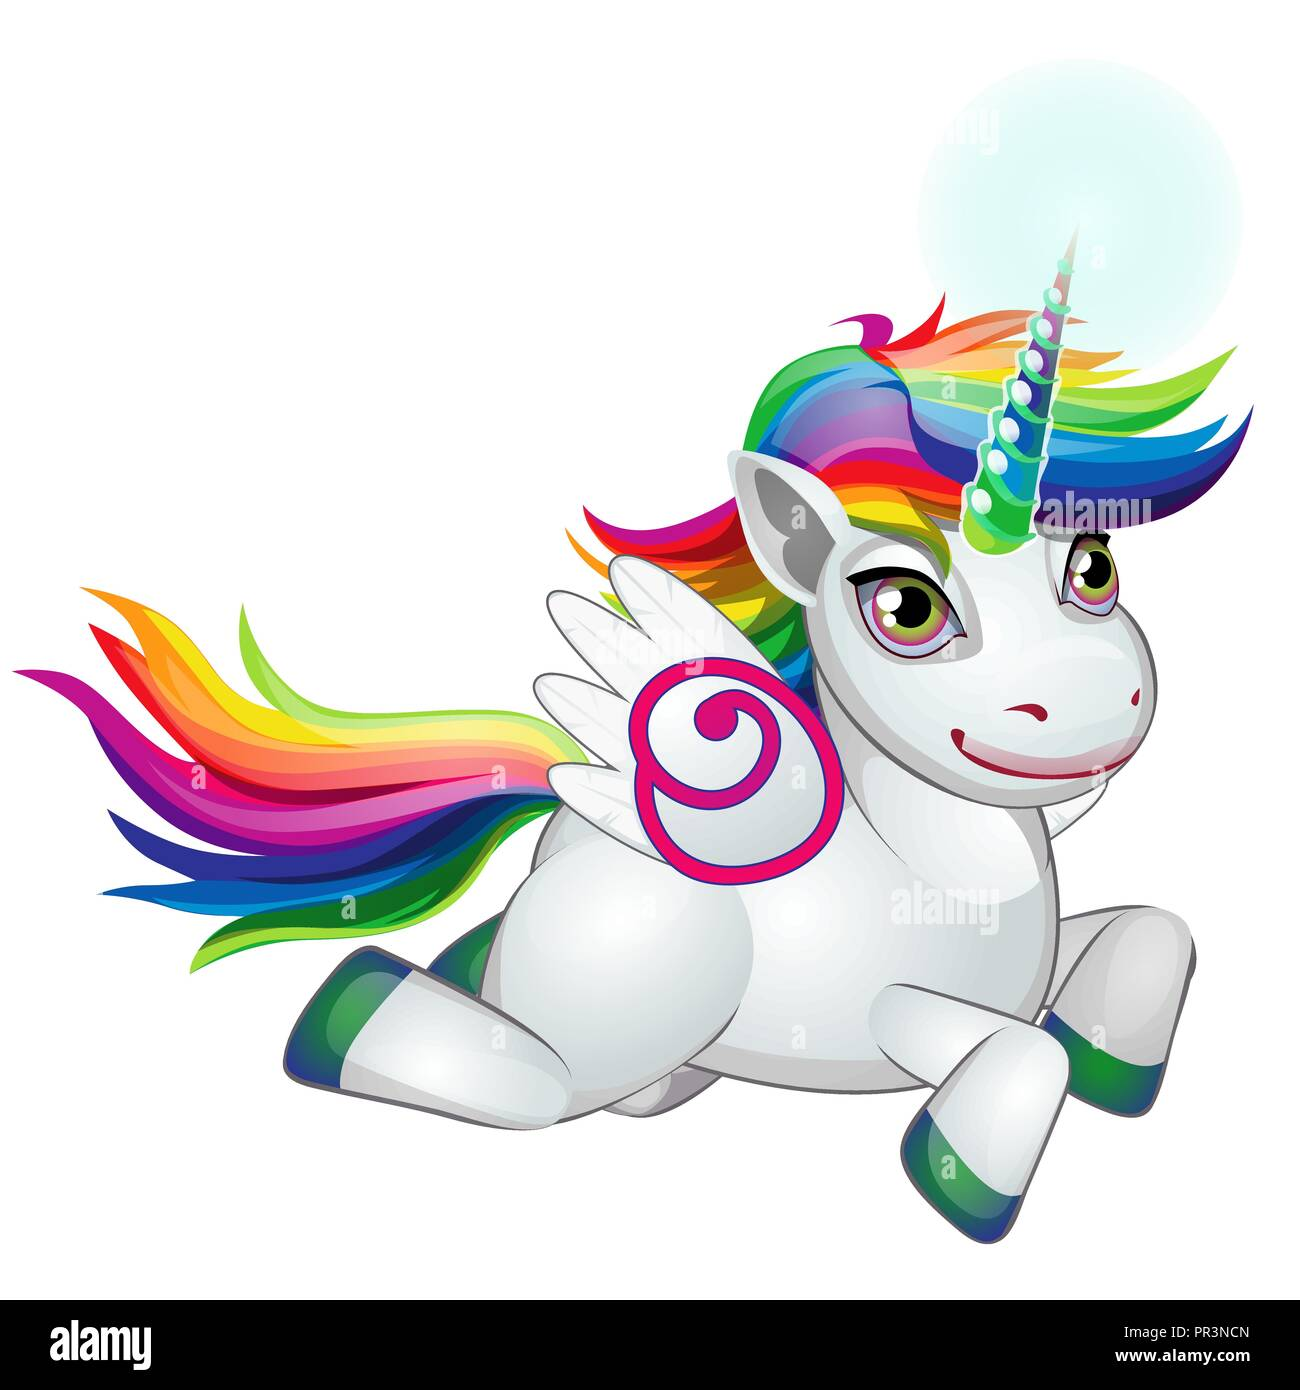 Cute Unicorn Pony With Mane Colors Of The Rainbow Happily Galloping